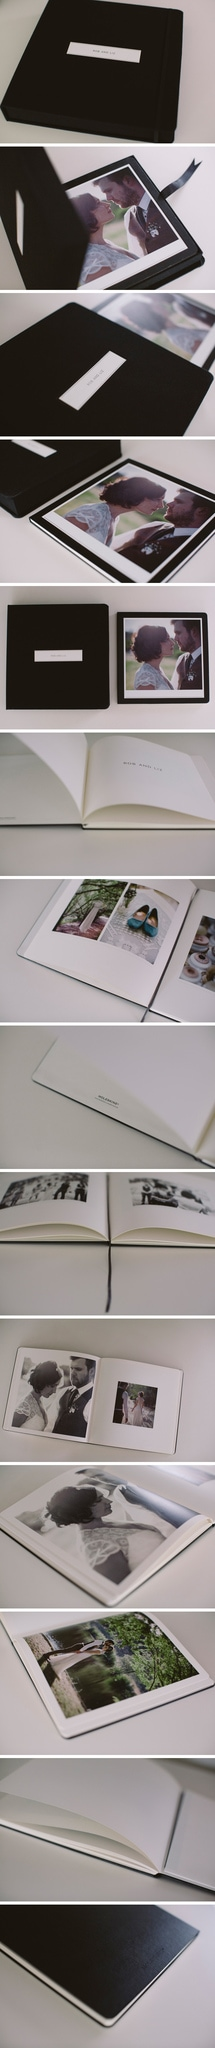 Milk Moleskine Photo Book